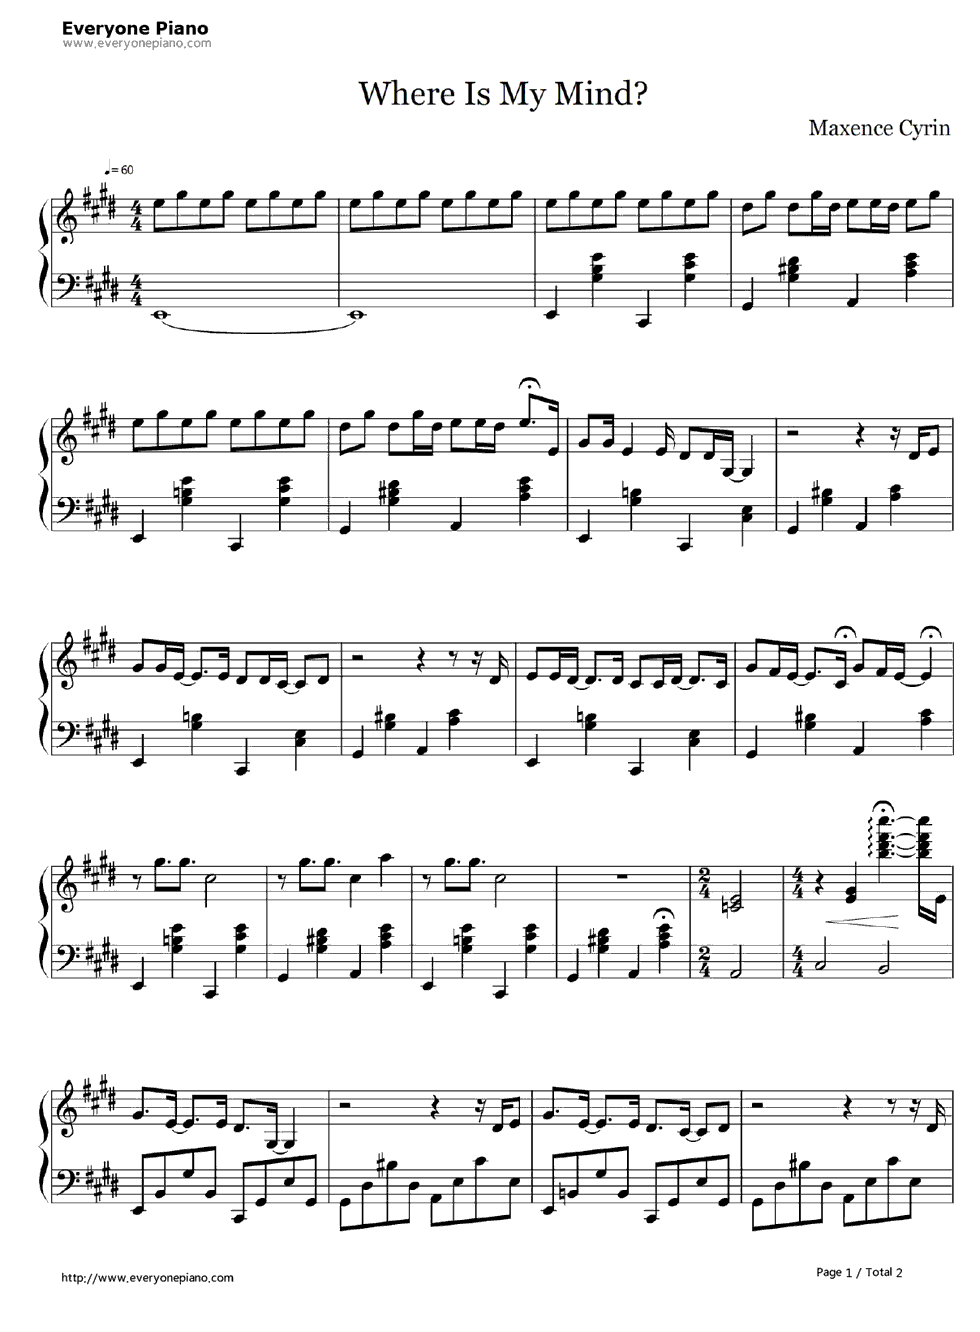 where is my mind sheet music free